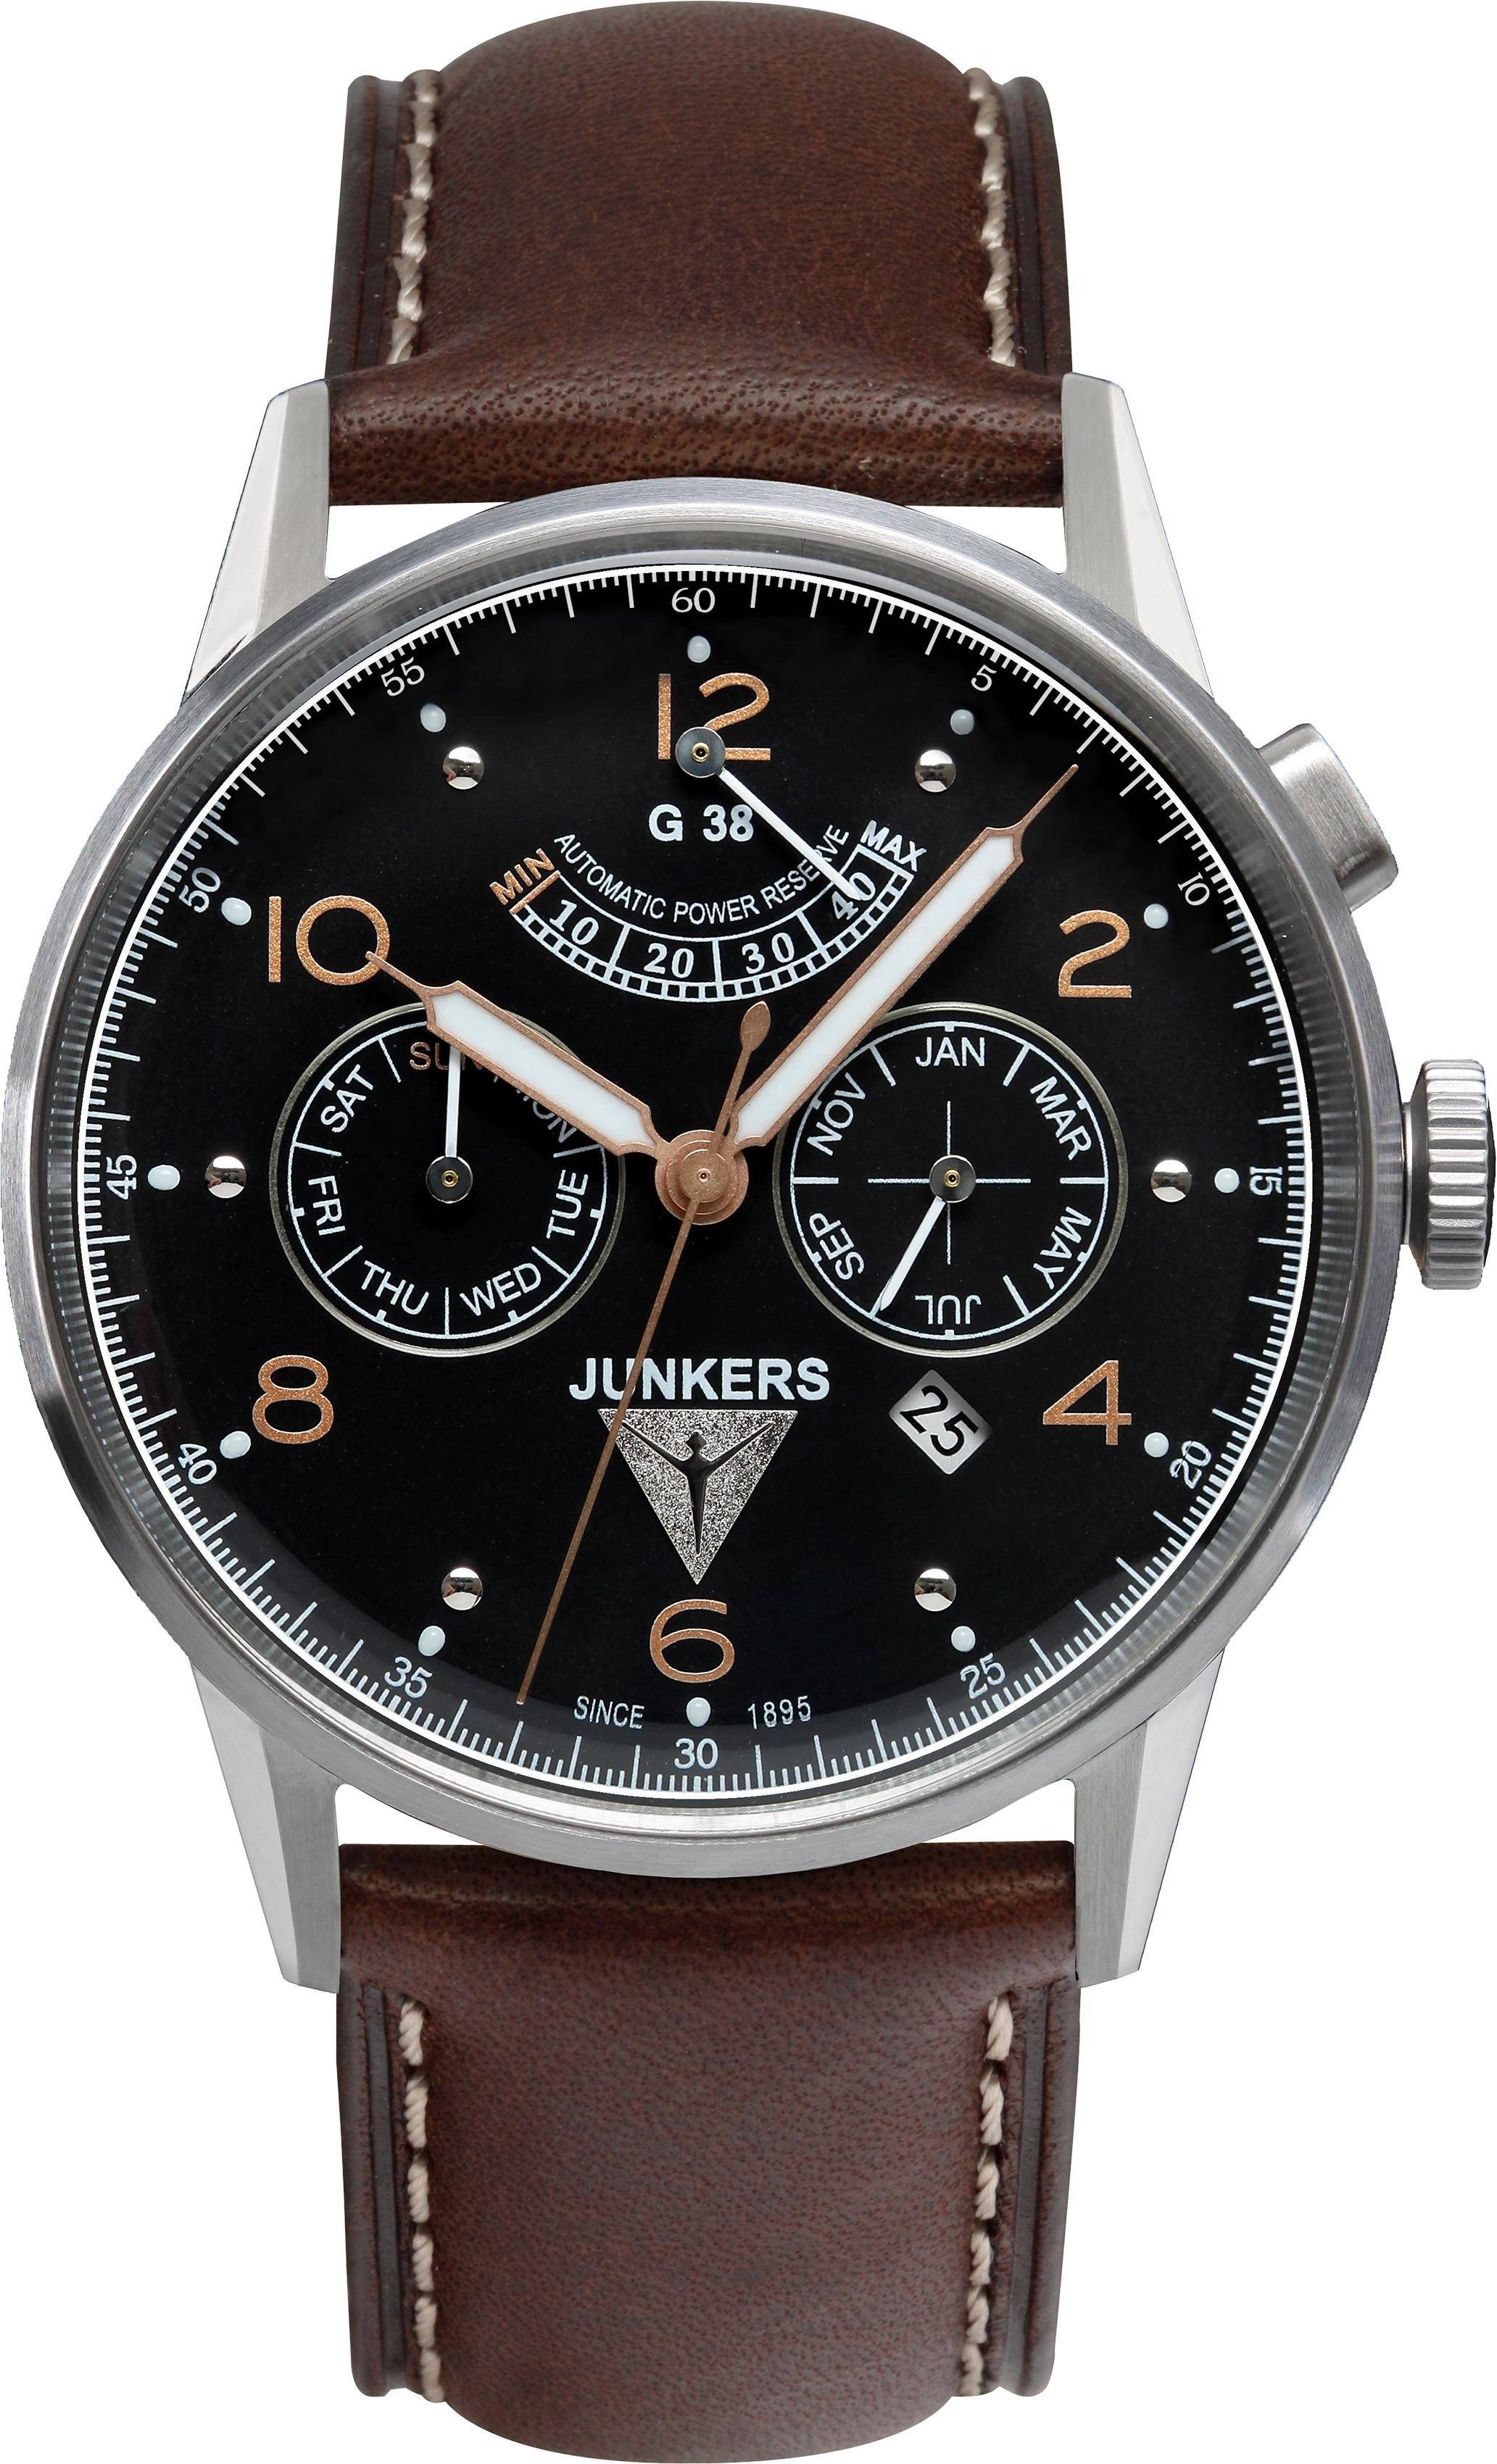 Junkers-Uhren Automatikuhr »G38, 6960-5« Made in Germany, braun